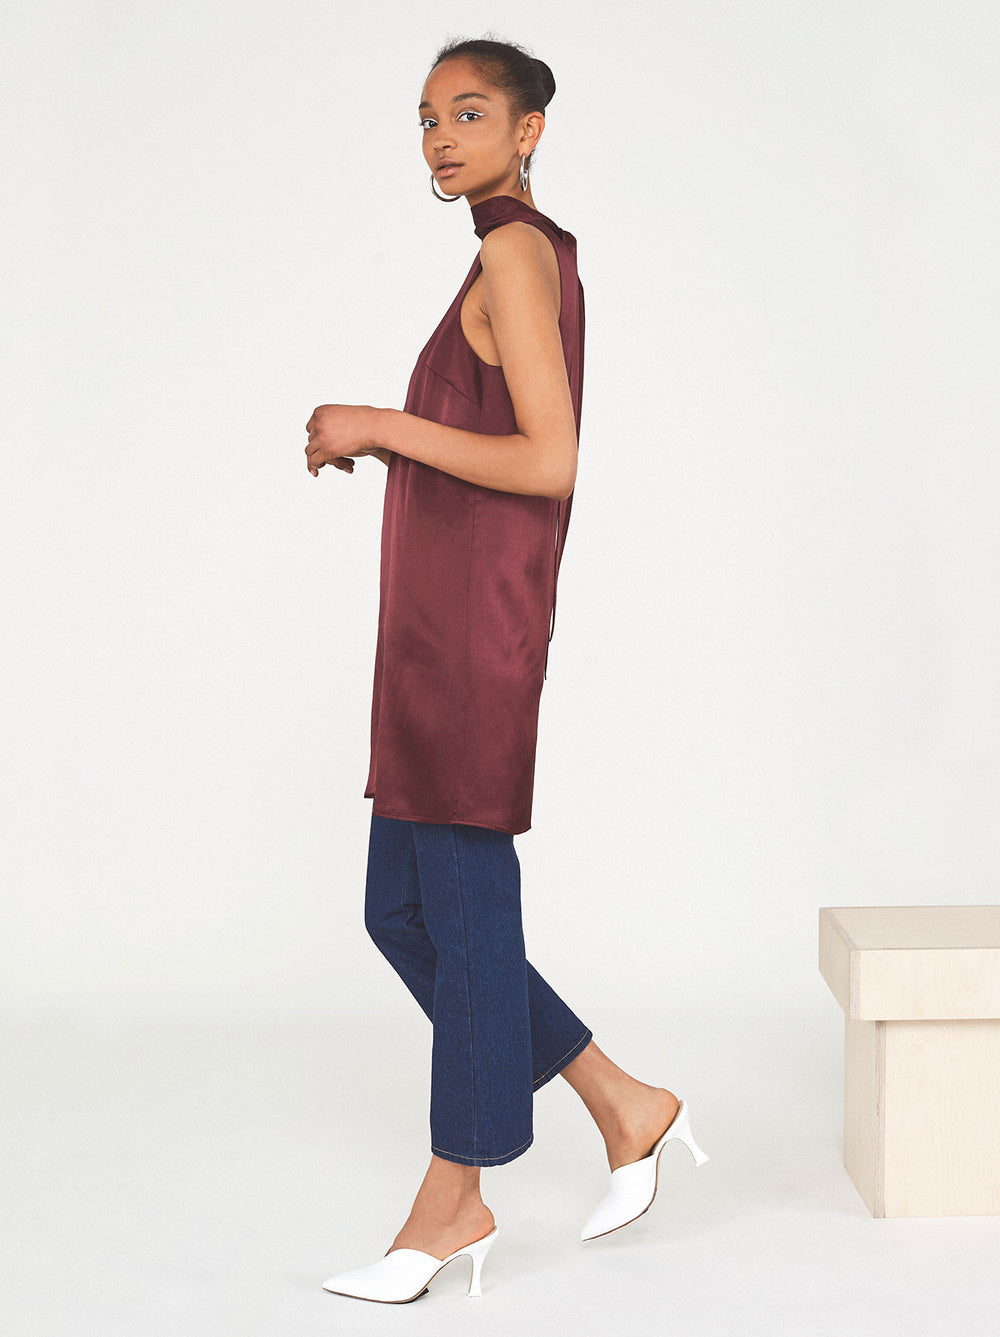 Adagio Scarf Neck Dress